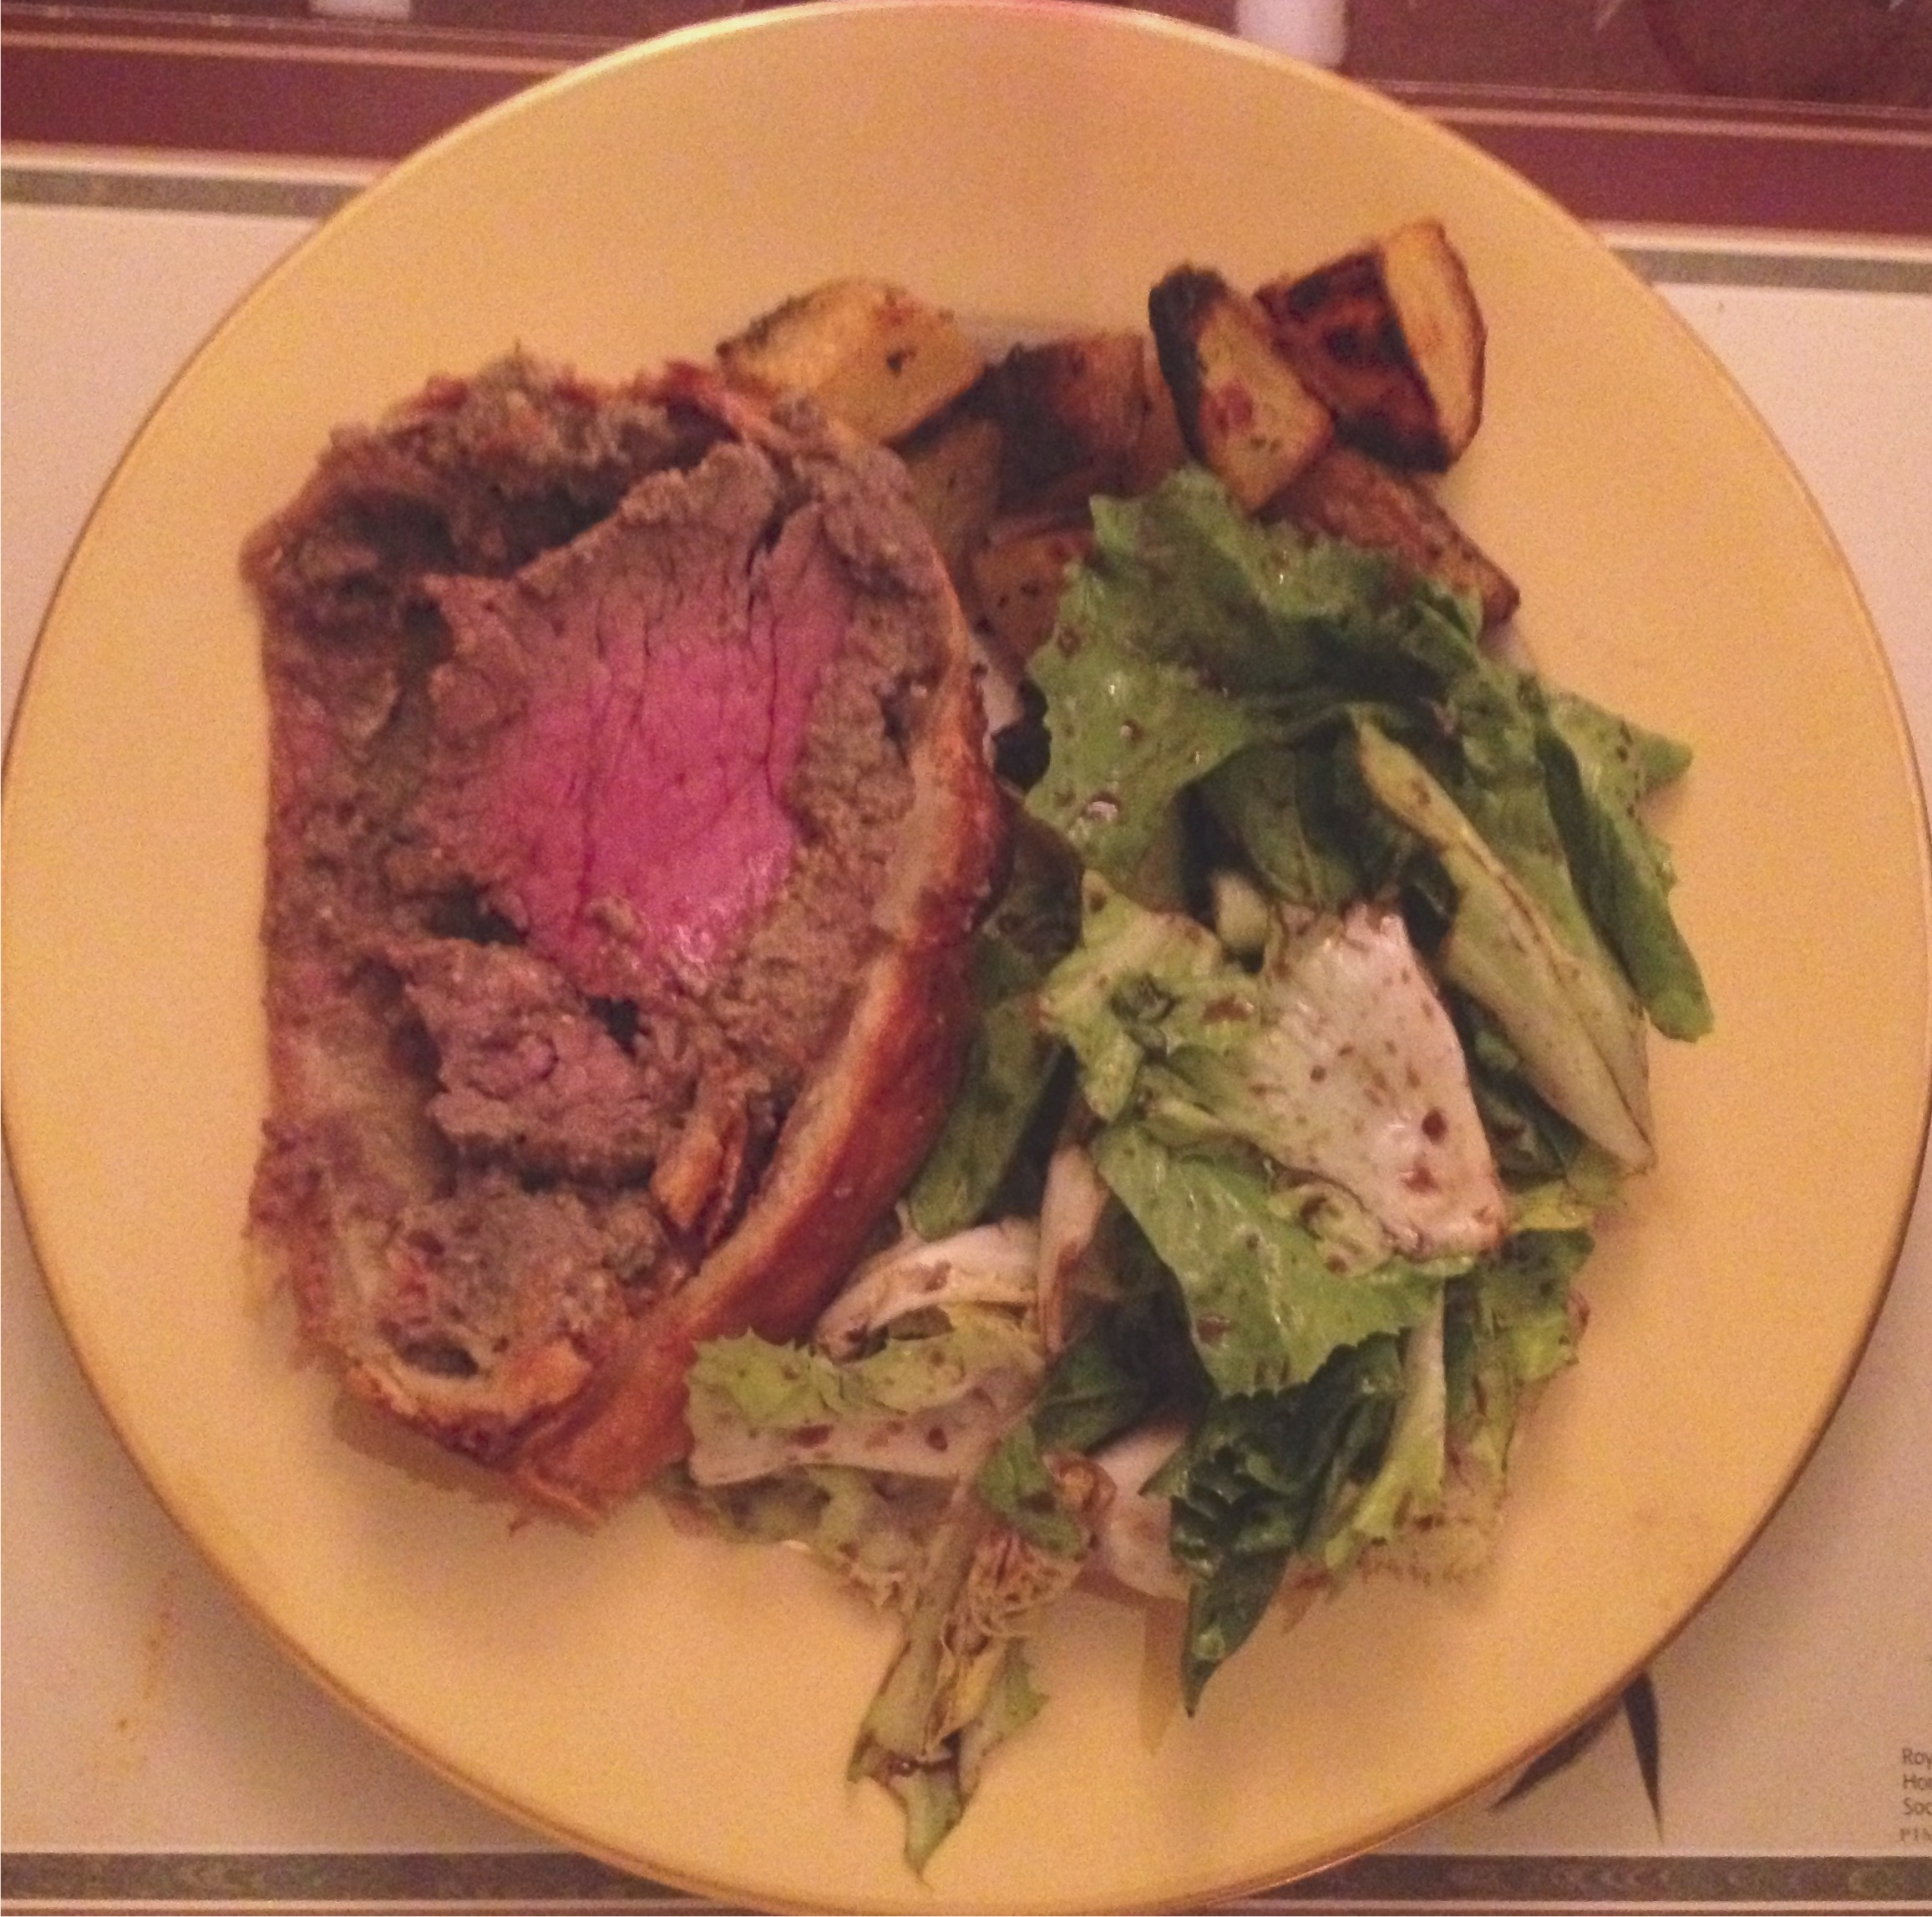 The main course plate - Beef Wellington, wilted escarole with a warm Balsamic dressing and crispy Yukon Gold potatoes.